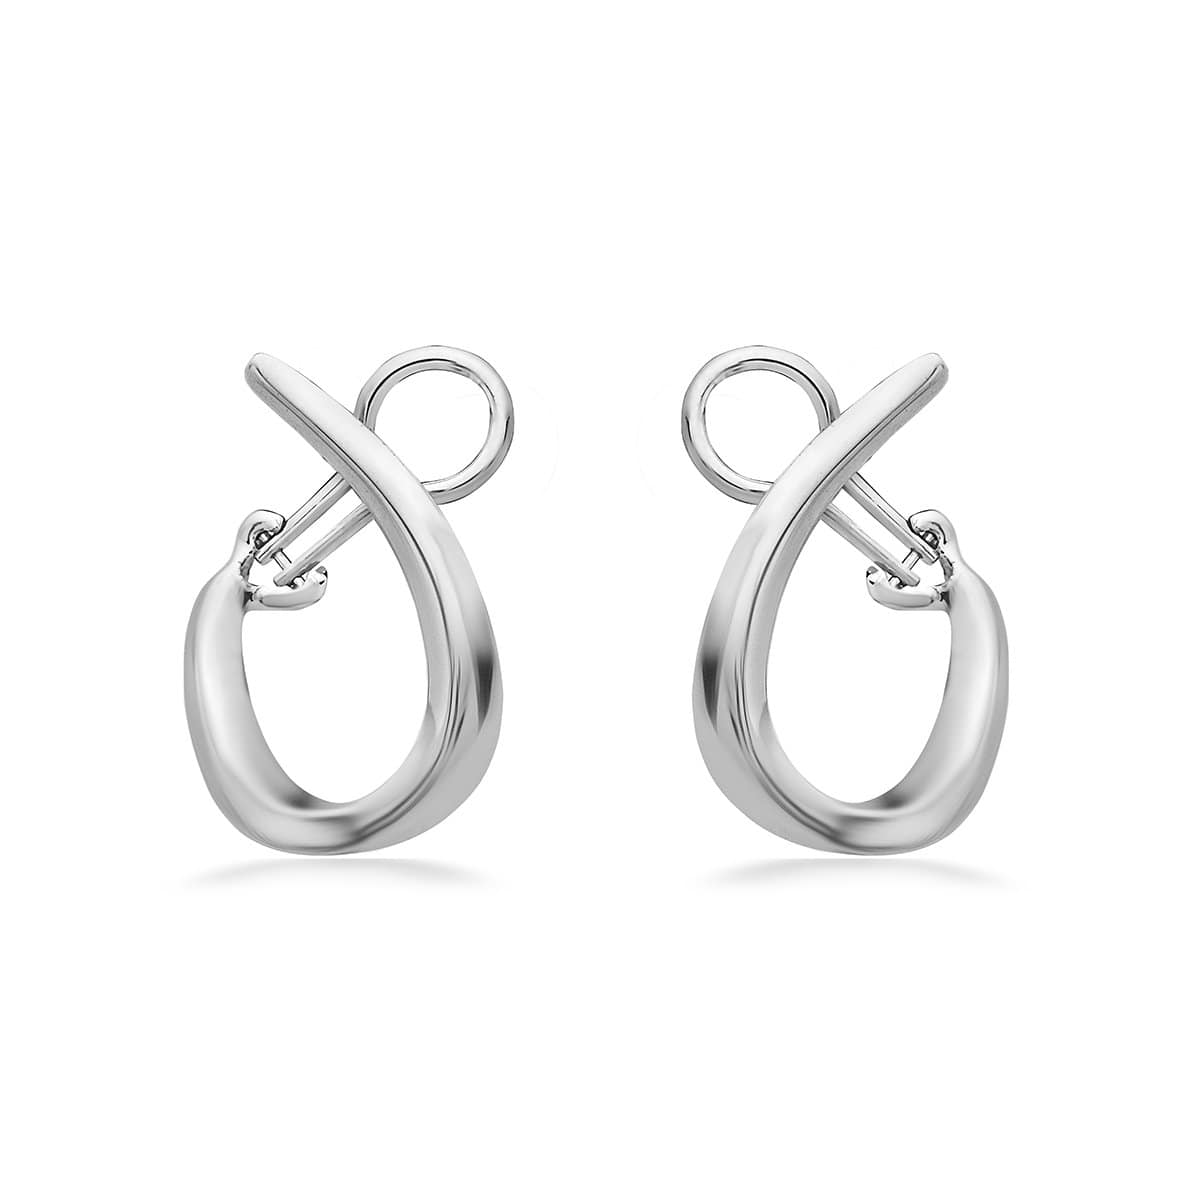 14K White Gold & Sterling Silver 26MM Hoop Earrings